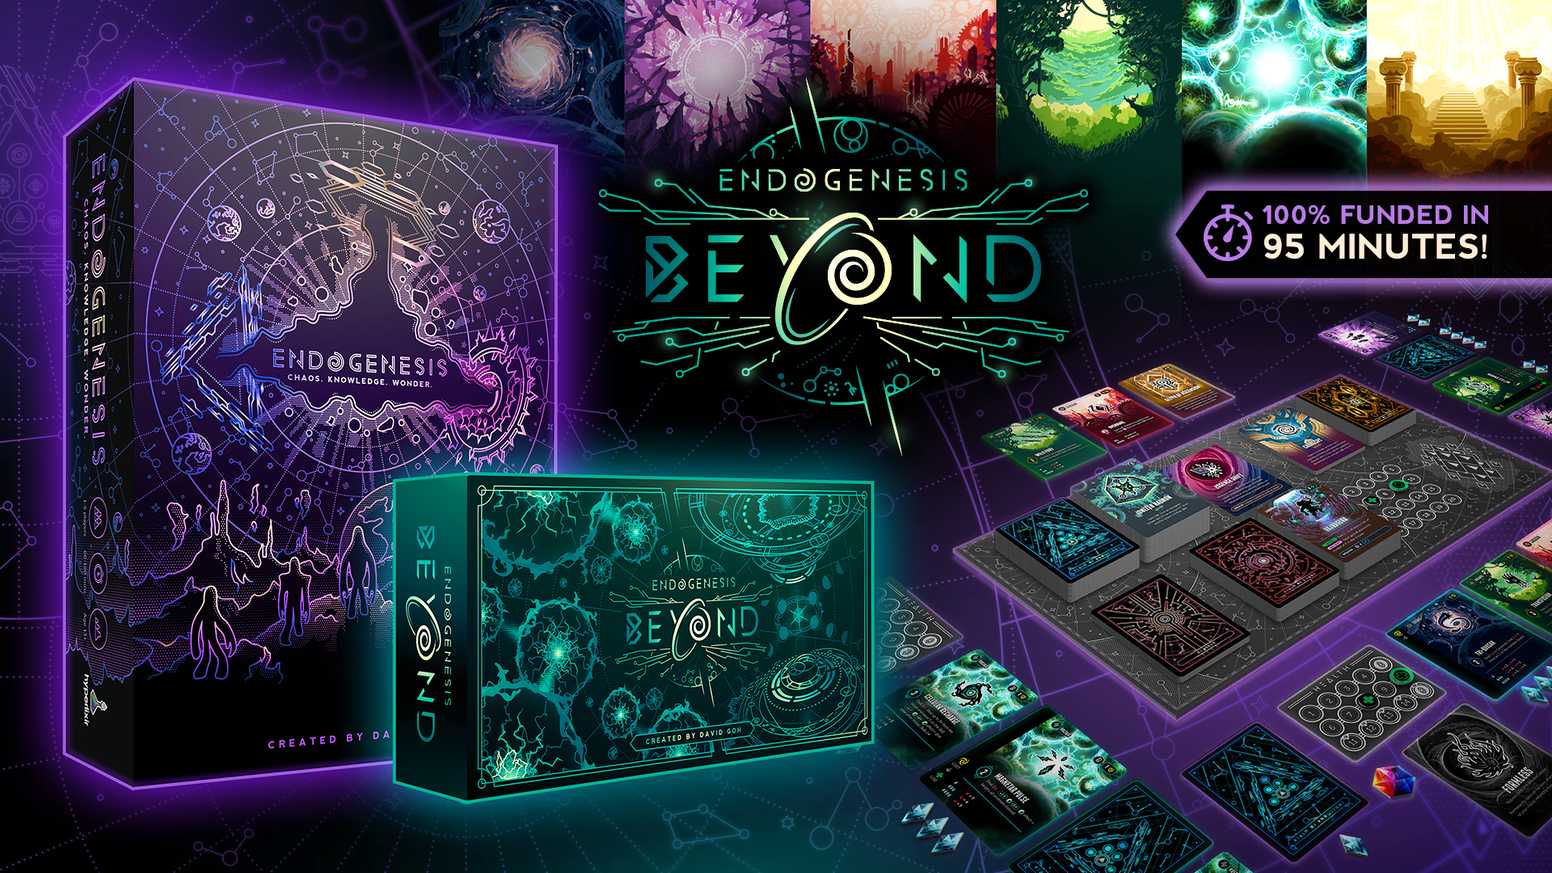 Customize power sets and engage in an epic battle for godhood in this strategic game for 1-5 players. Play solo, co-op or competitive.